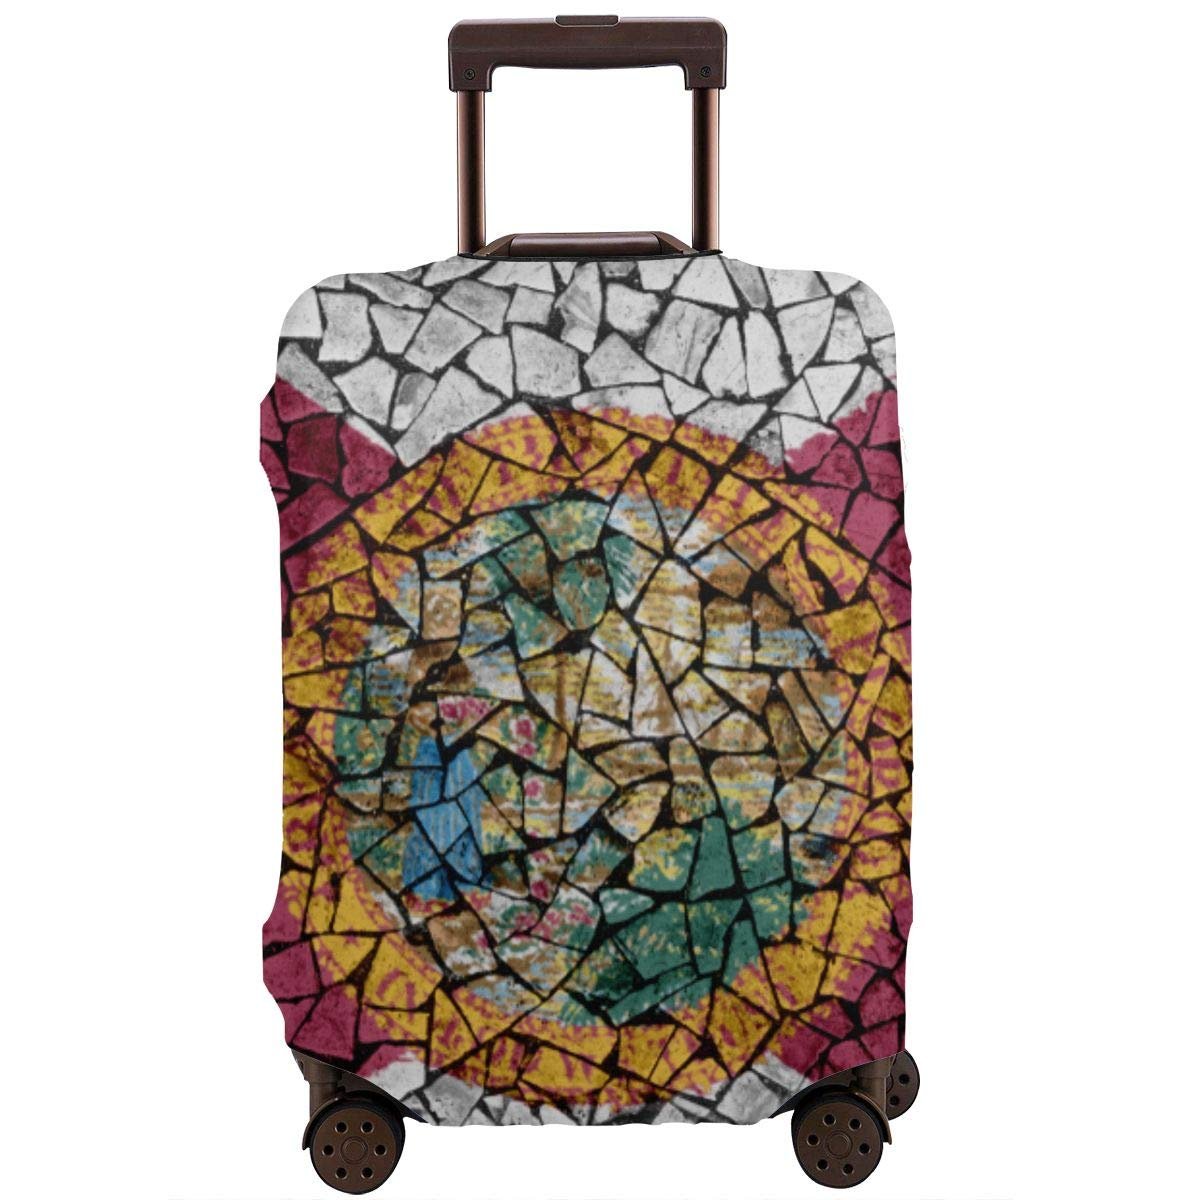 18-32 Inch Luggage Cover Protector Bag Suitcase Cover Protectors Travel Luggage Sleeve Protector S M L XL Mosaic Tiles Painting of Florida Flag US State Background XL